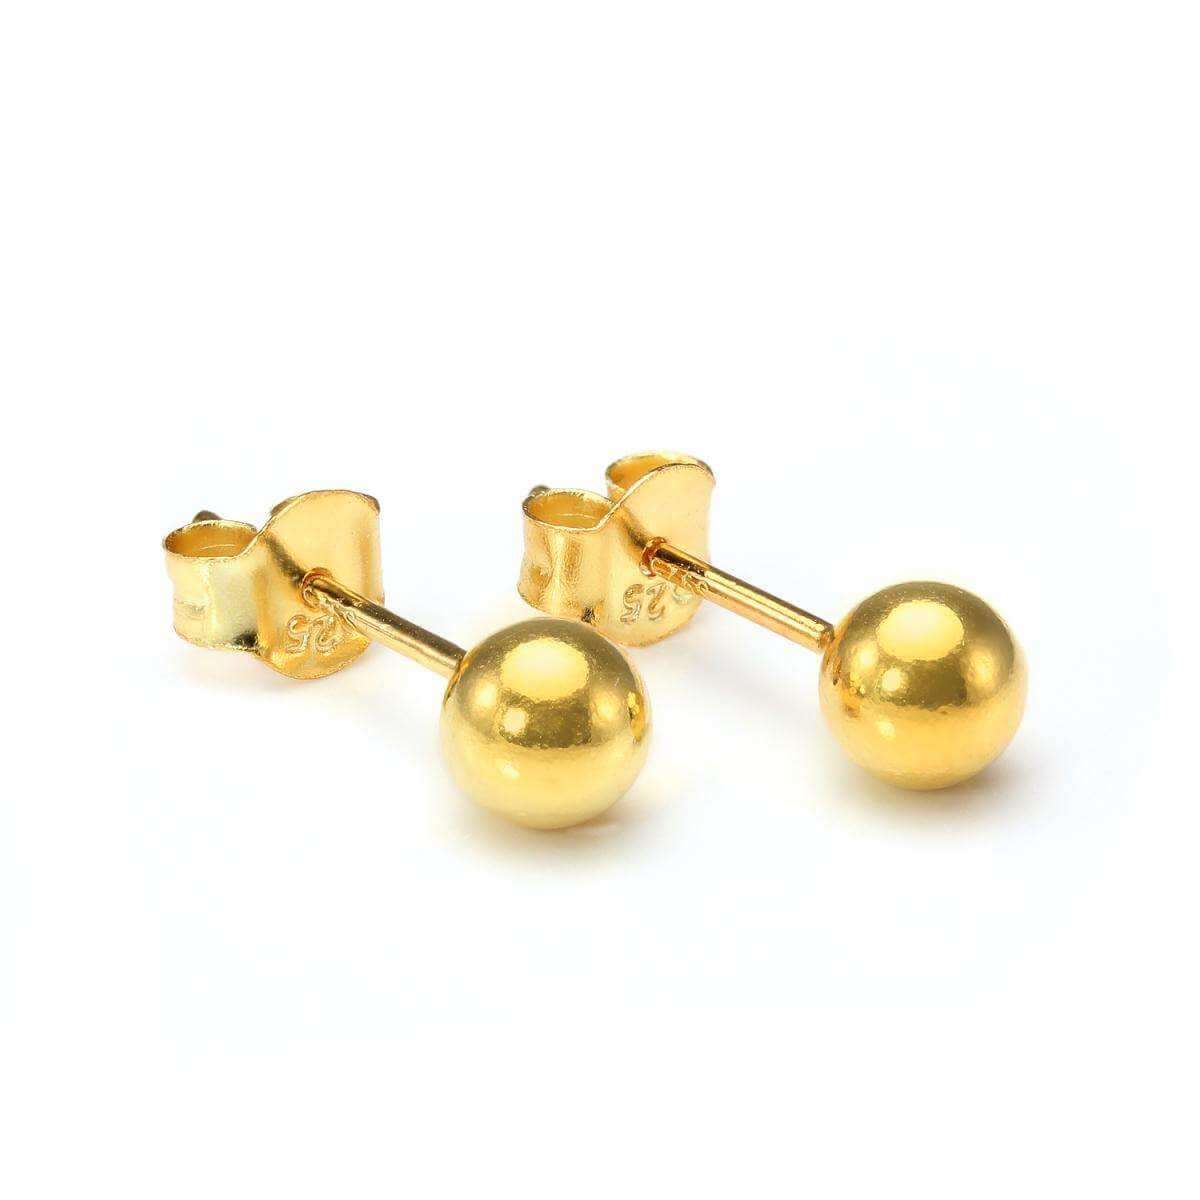 Gold Plated Small 6mm Sterling Silver Ball Stud Earrings